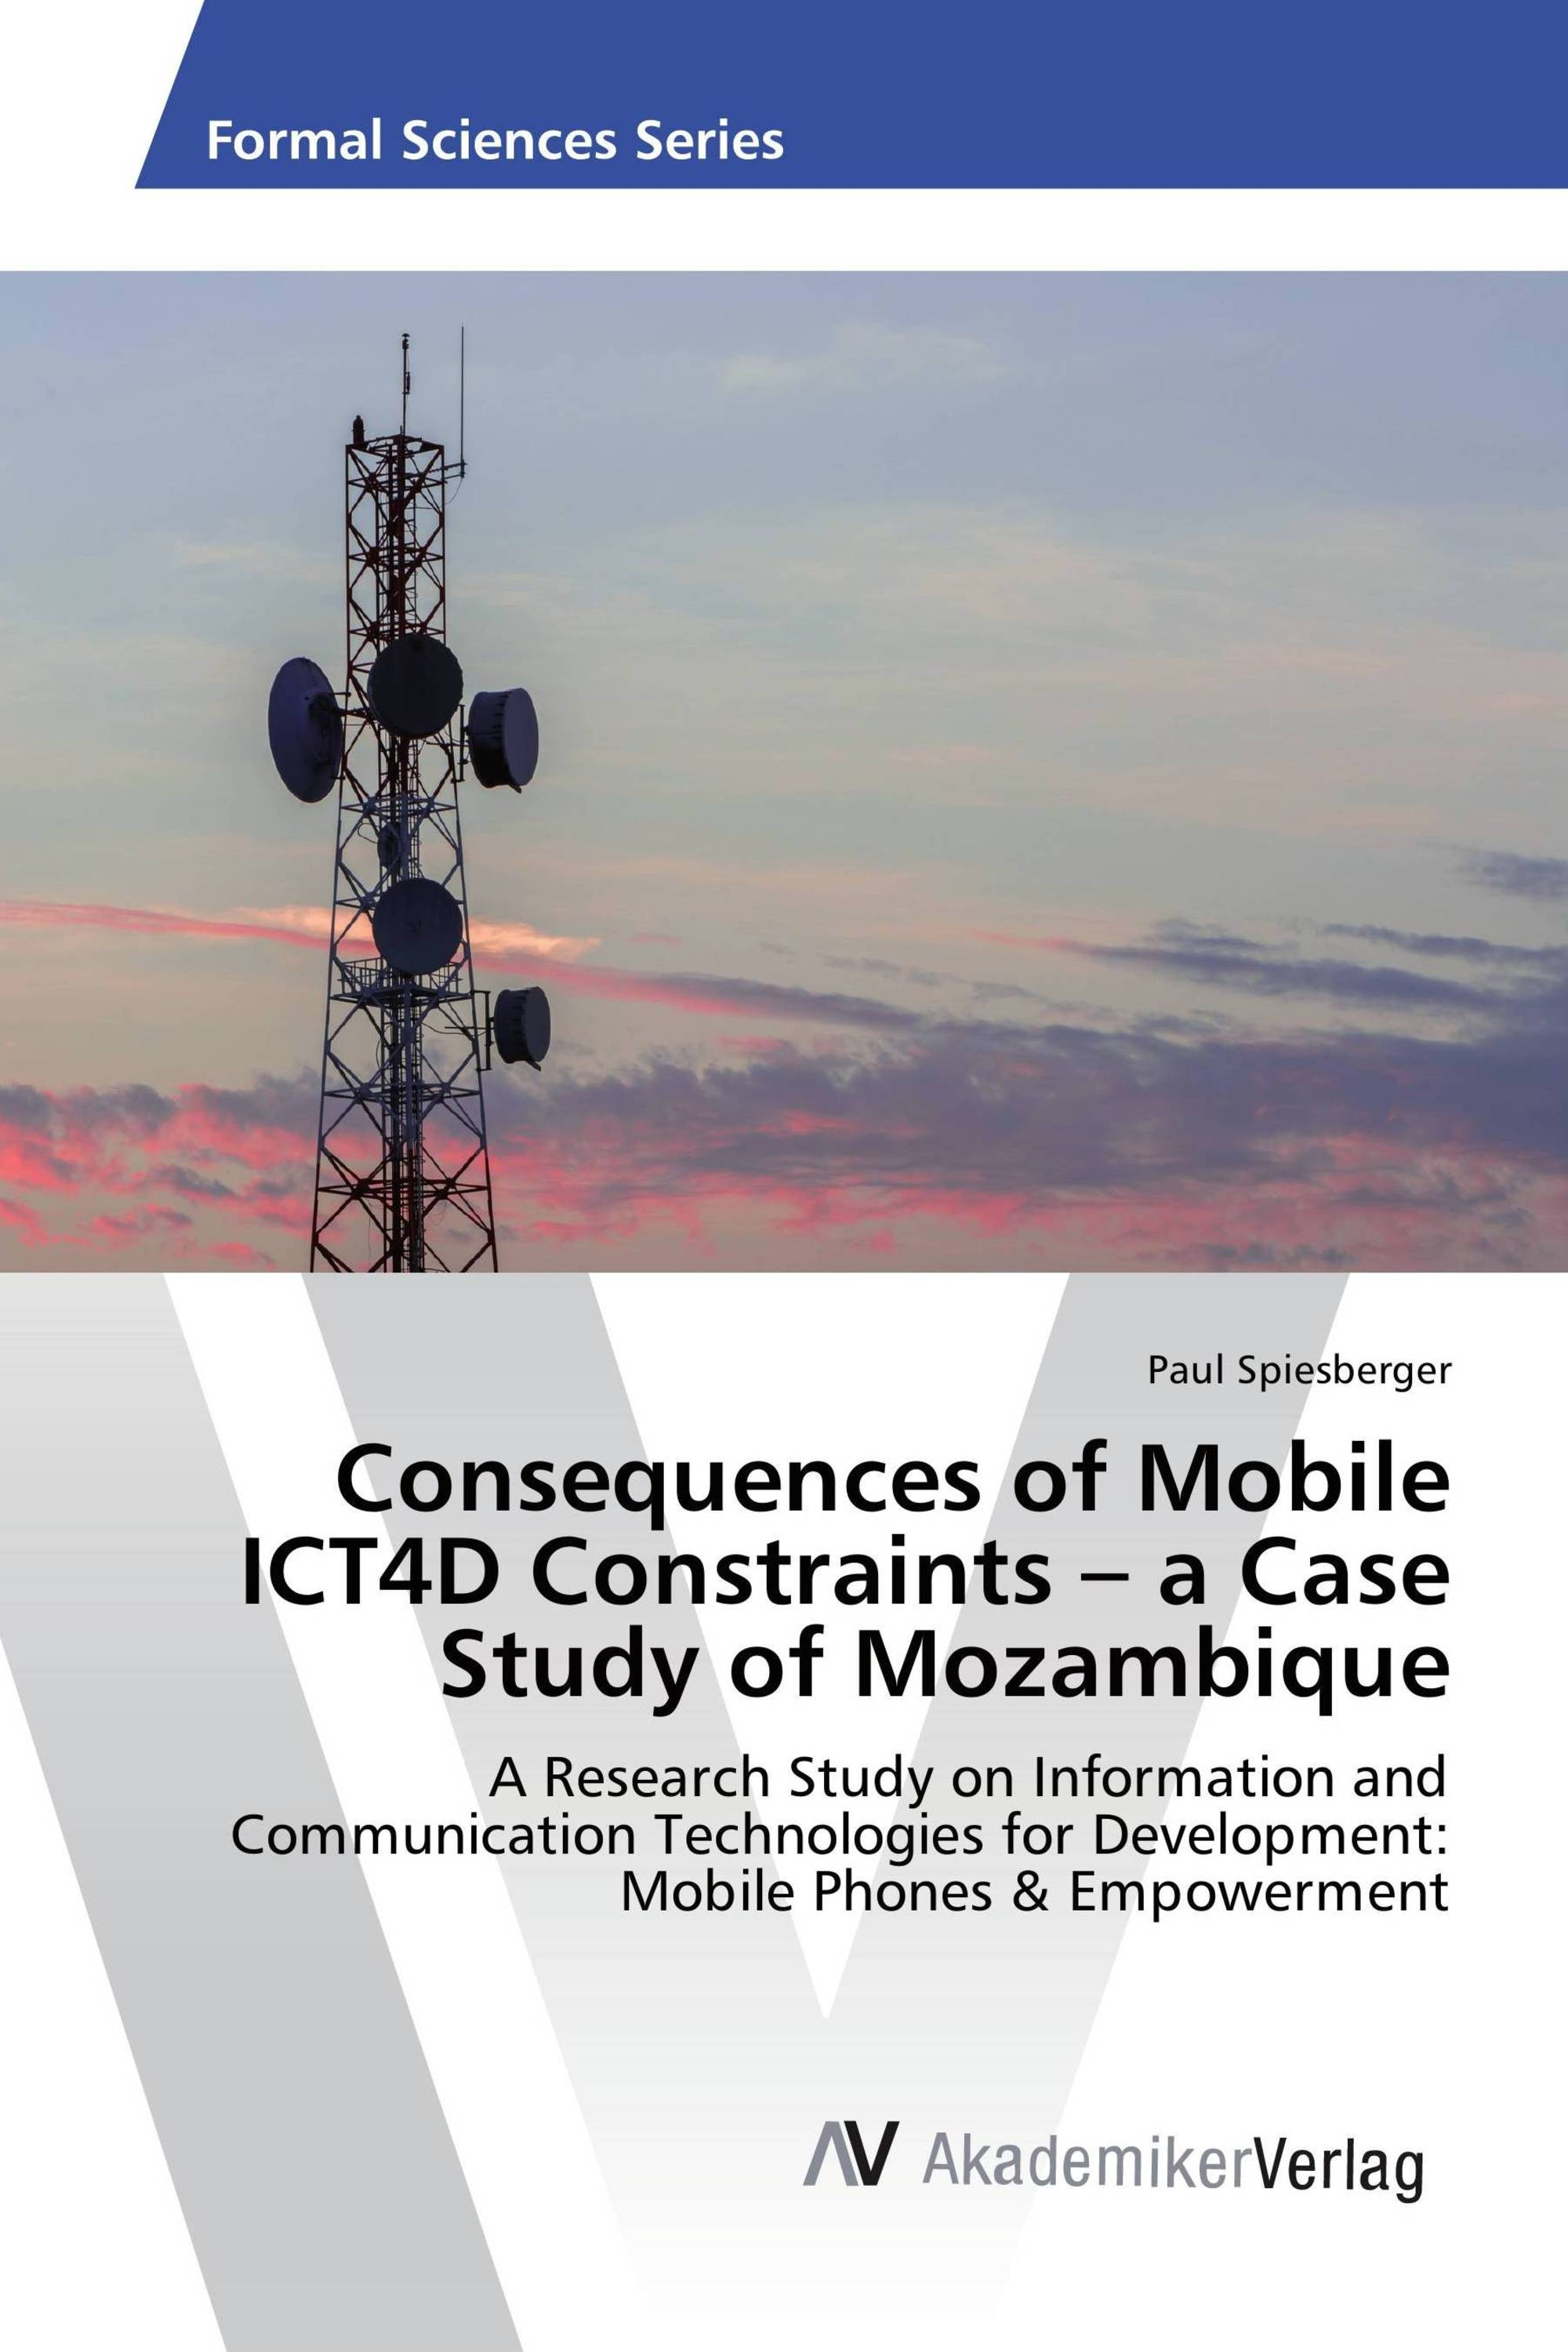 Consequences of Mobile ICT4D Constraints – a Case Study of Mozambique